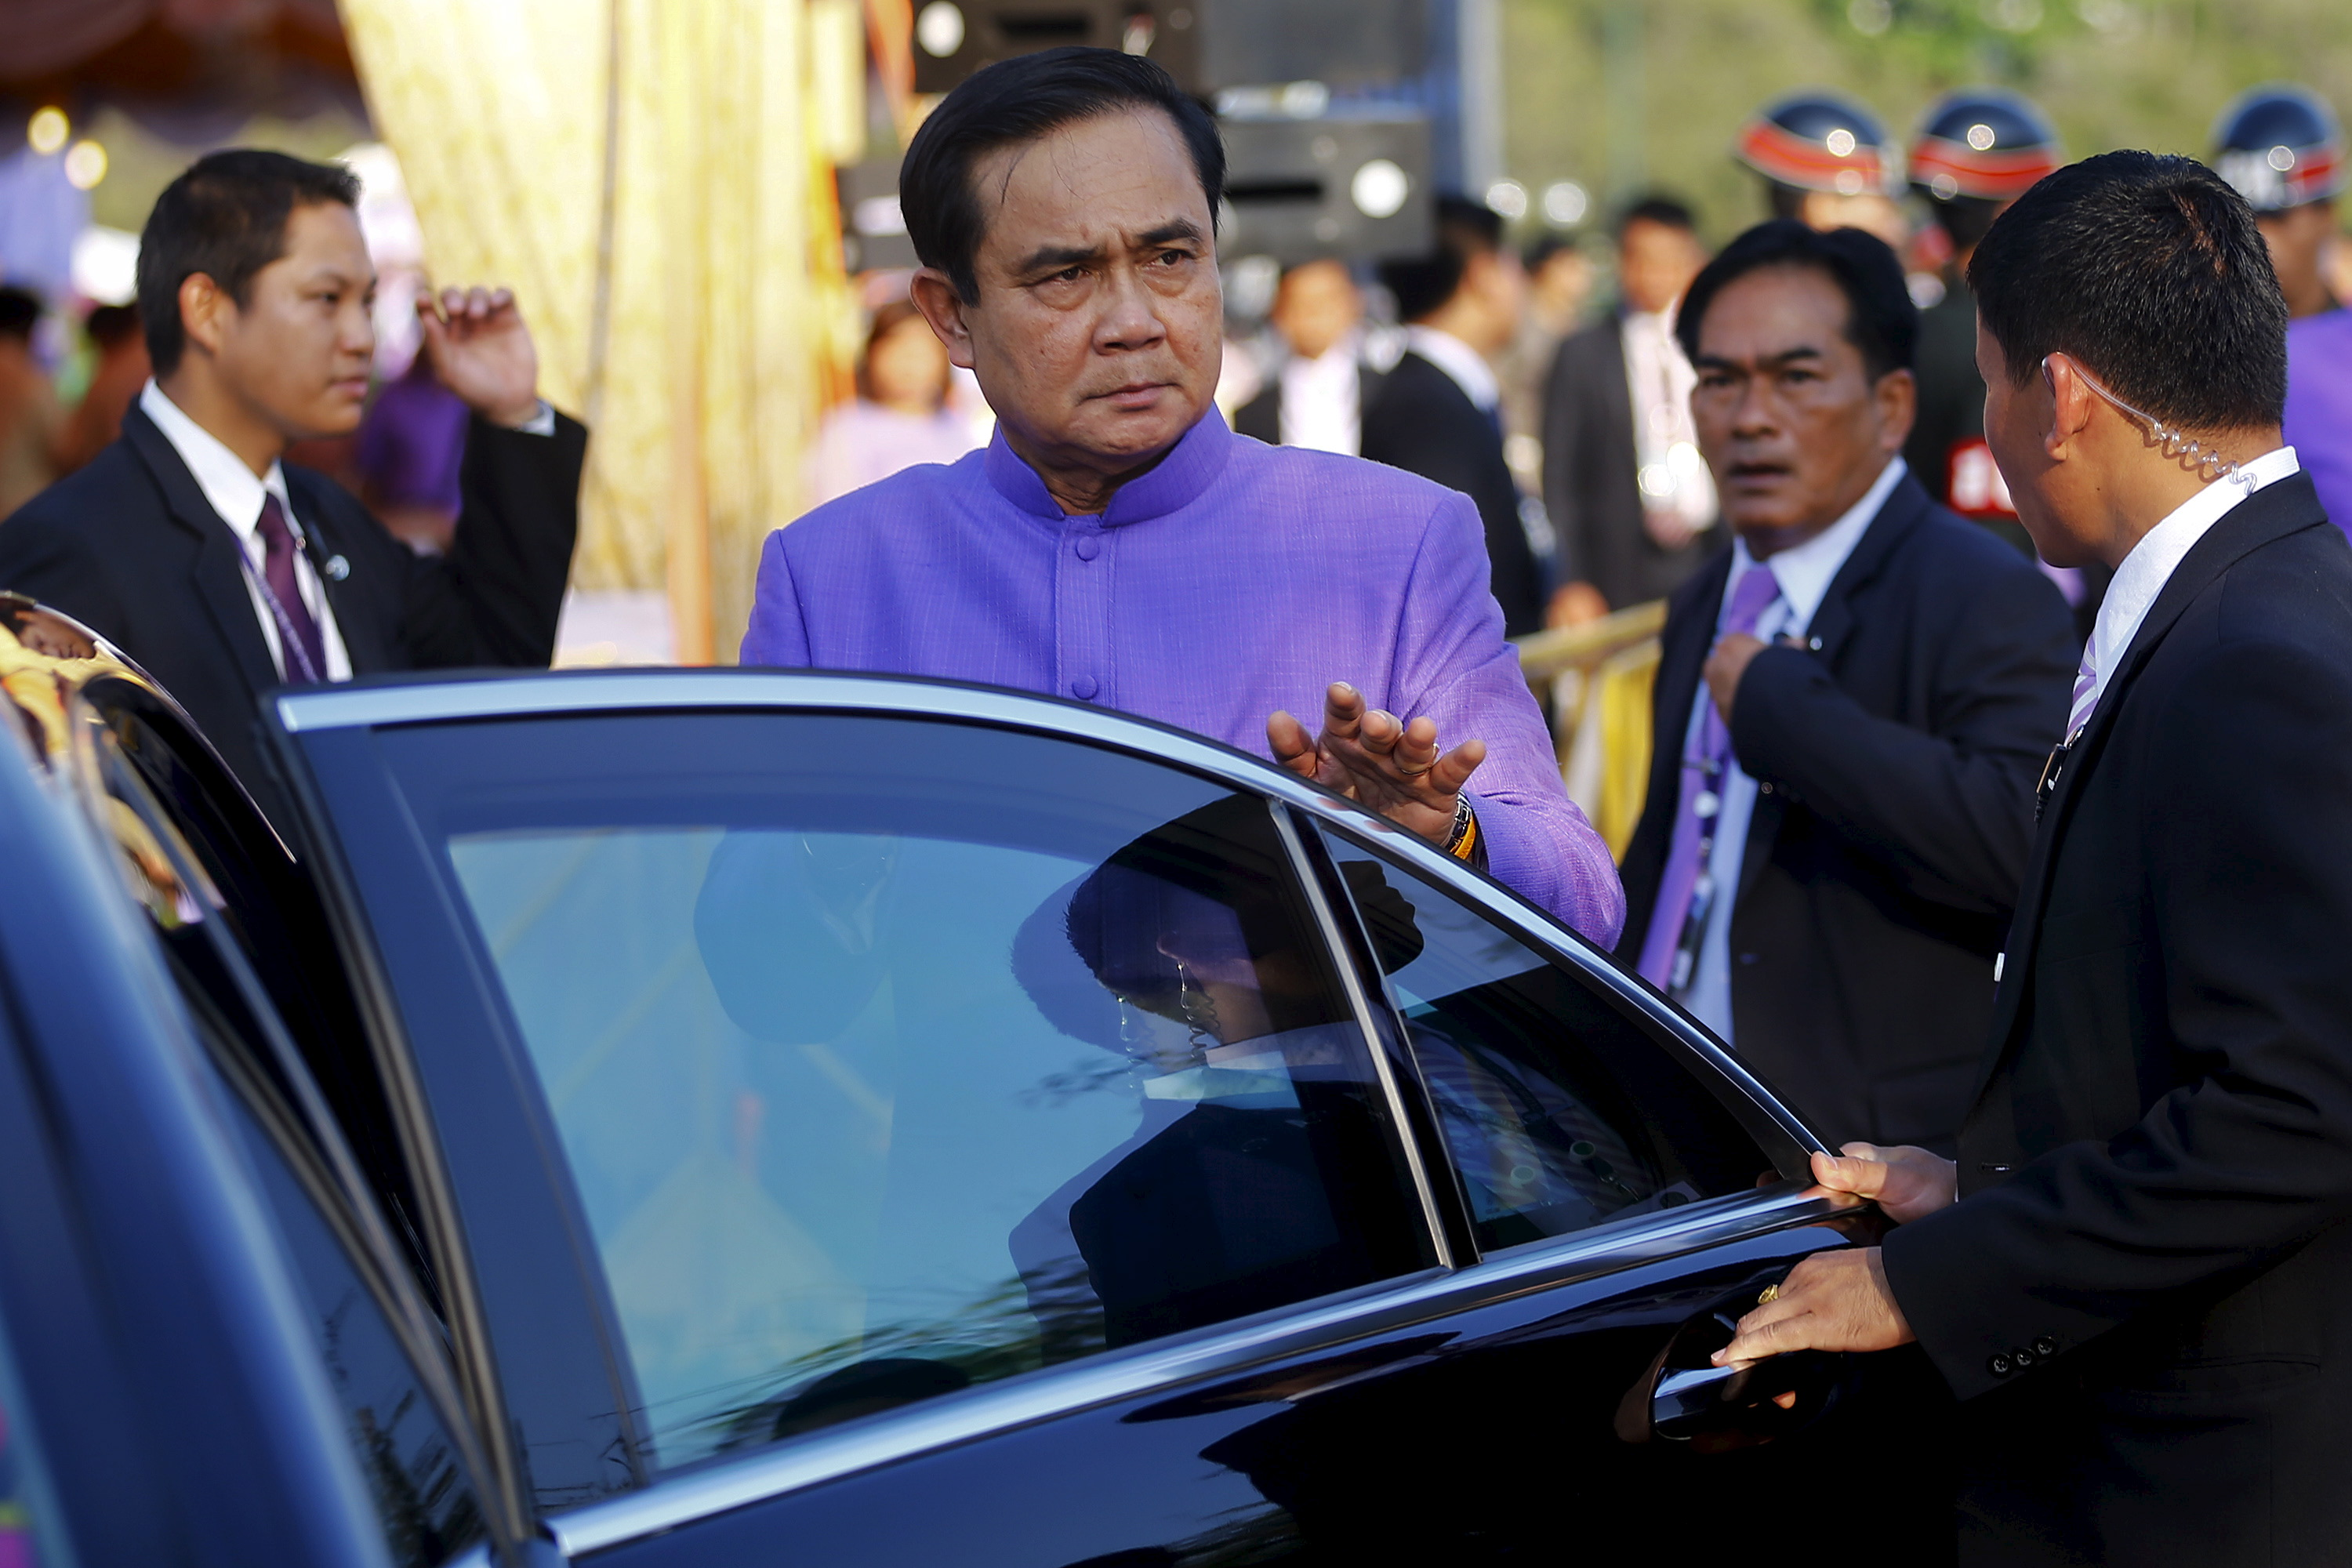 Thailand's Prime Minister Prayuth Chan-ocha gets in his car after the merit-making ceremony on the occasion of Princess Maha Chakri Sirindhorn's birthday at Sanam Luang in Bangkok on April 2, 2015